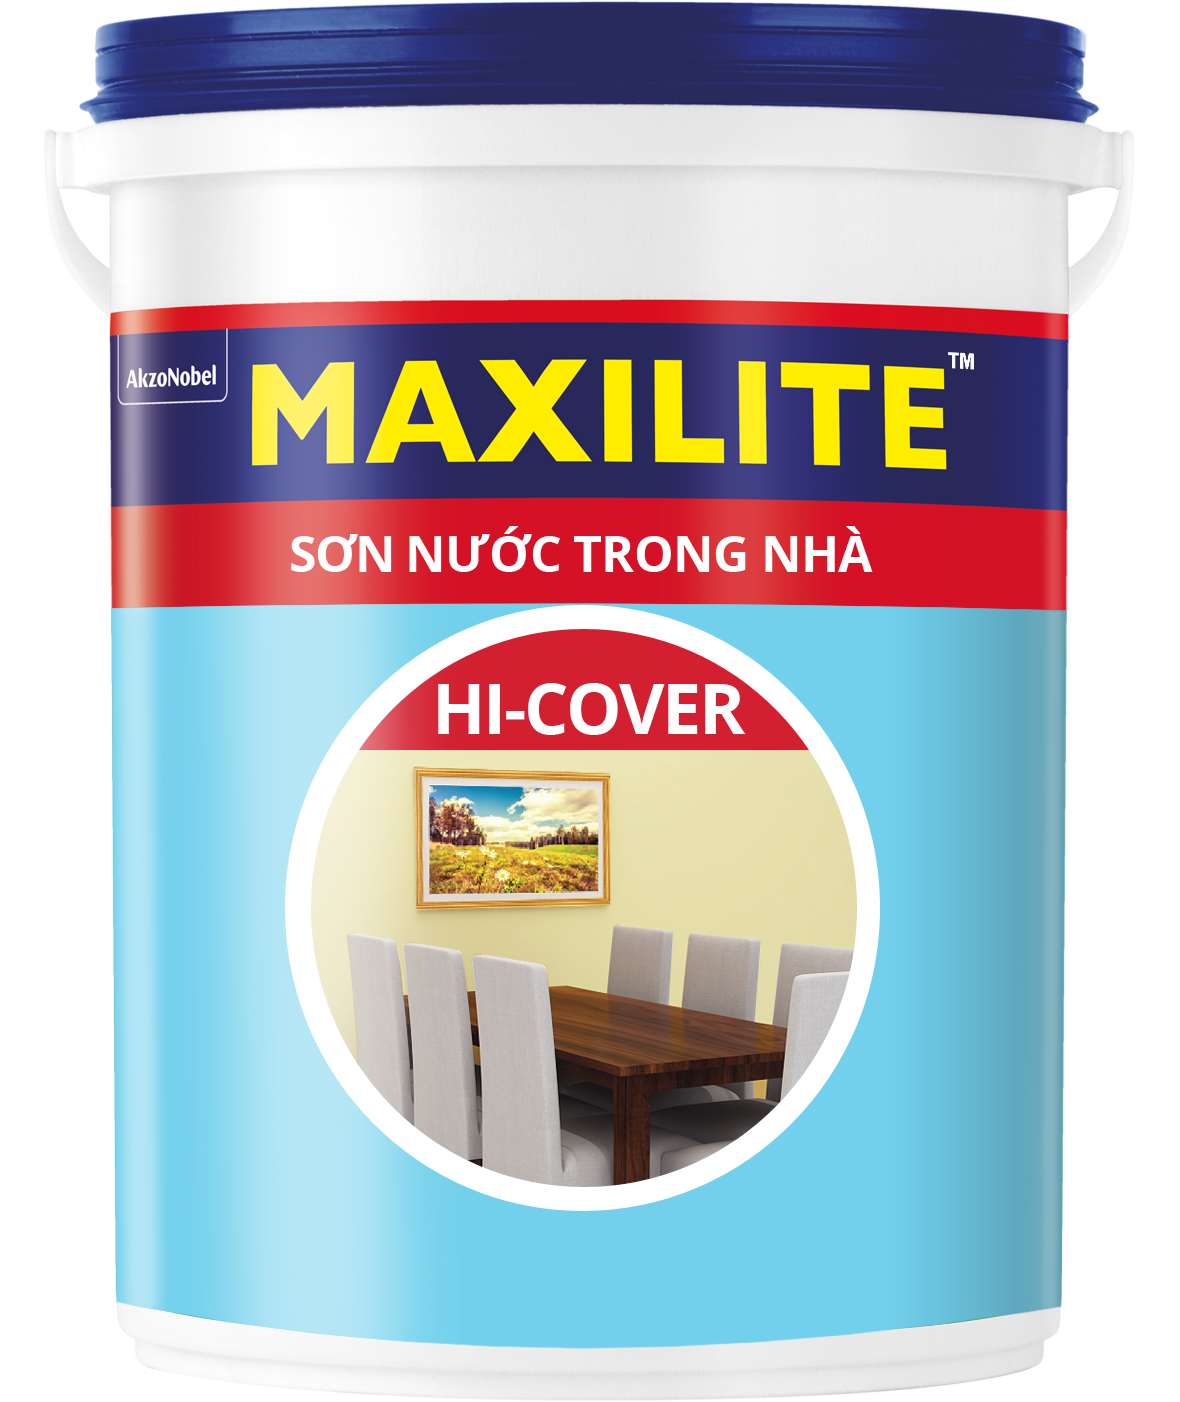 son_nuoc_trong_nha_hi_cover